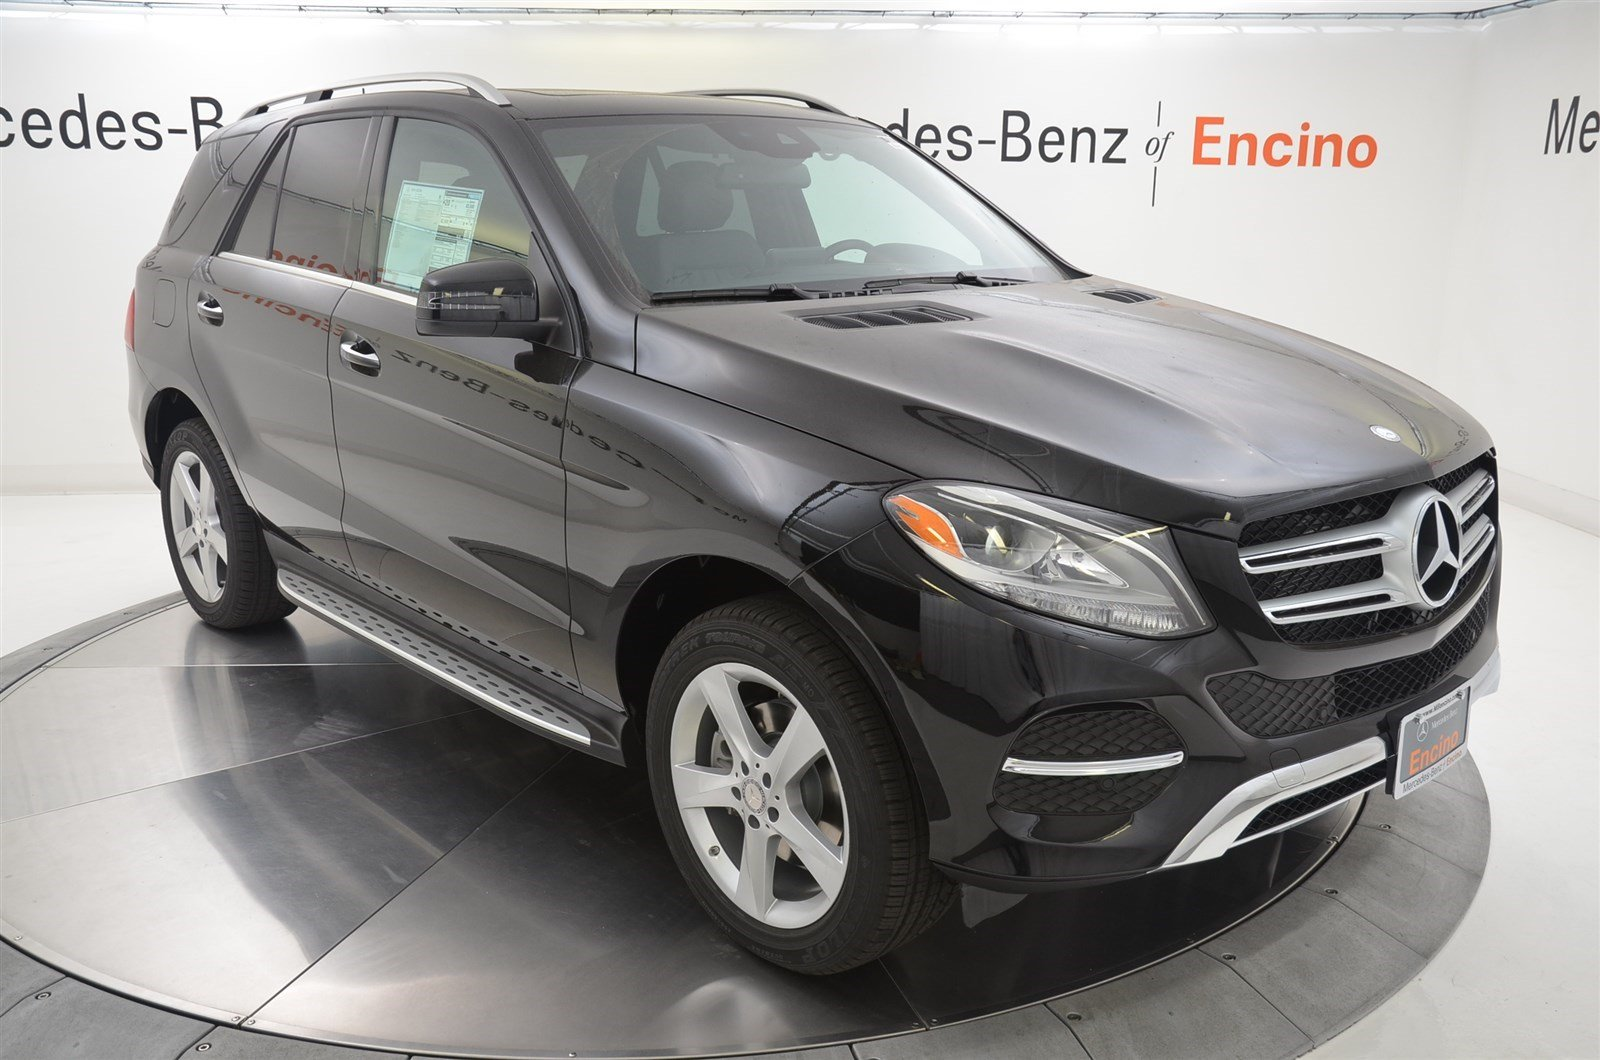 new 2016 mercedes benz gle gle350 4matic sport utility in encino 53950 mercedes benz of encino. Black Bedroom Furniture Sets. Home Design Ideas